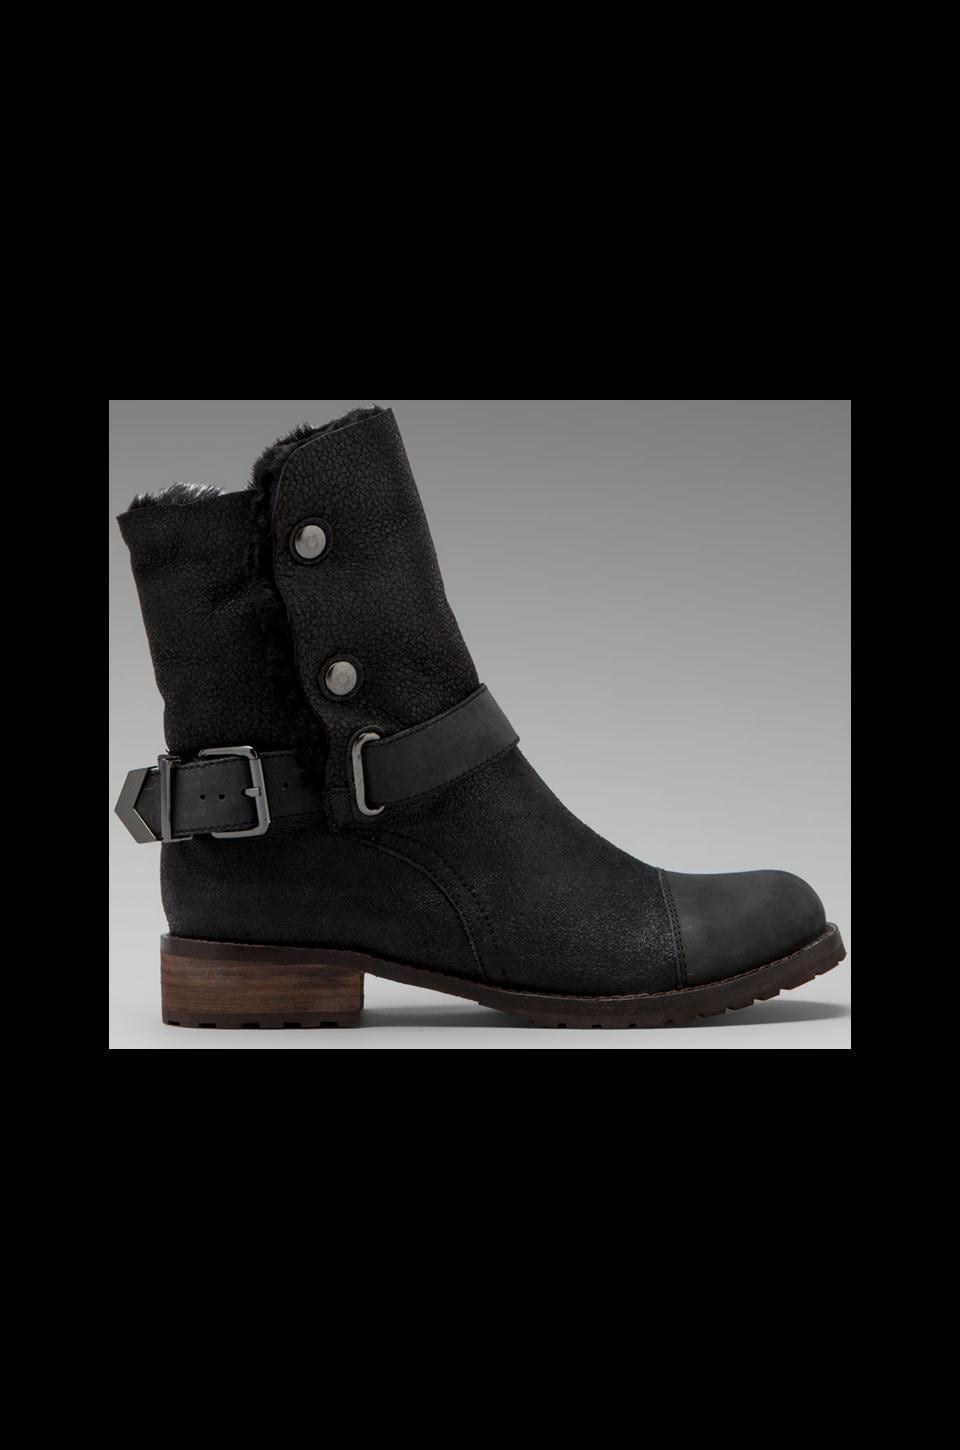 Matt Bernson Tundra Boot in Black Cracked/Black